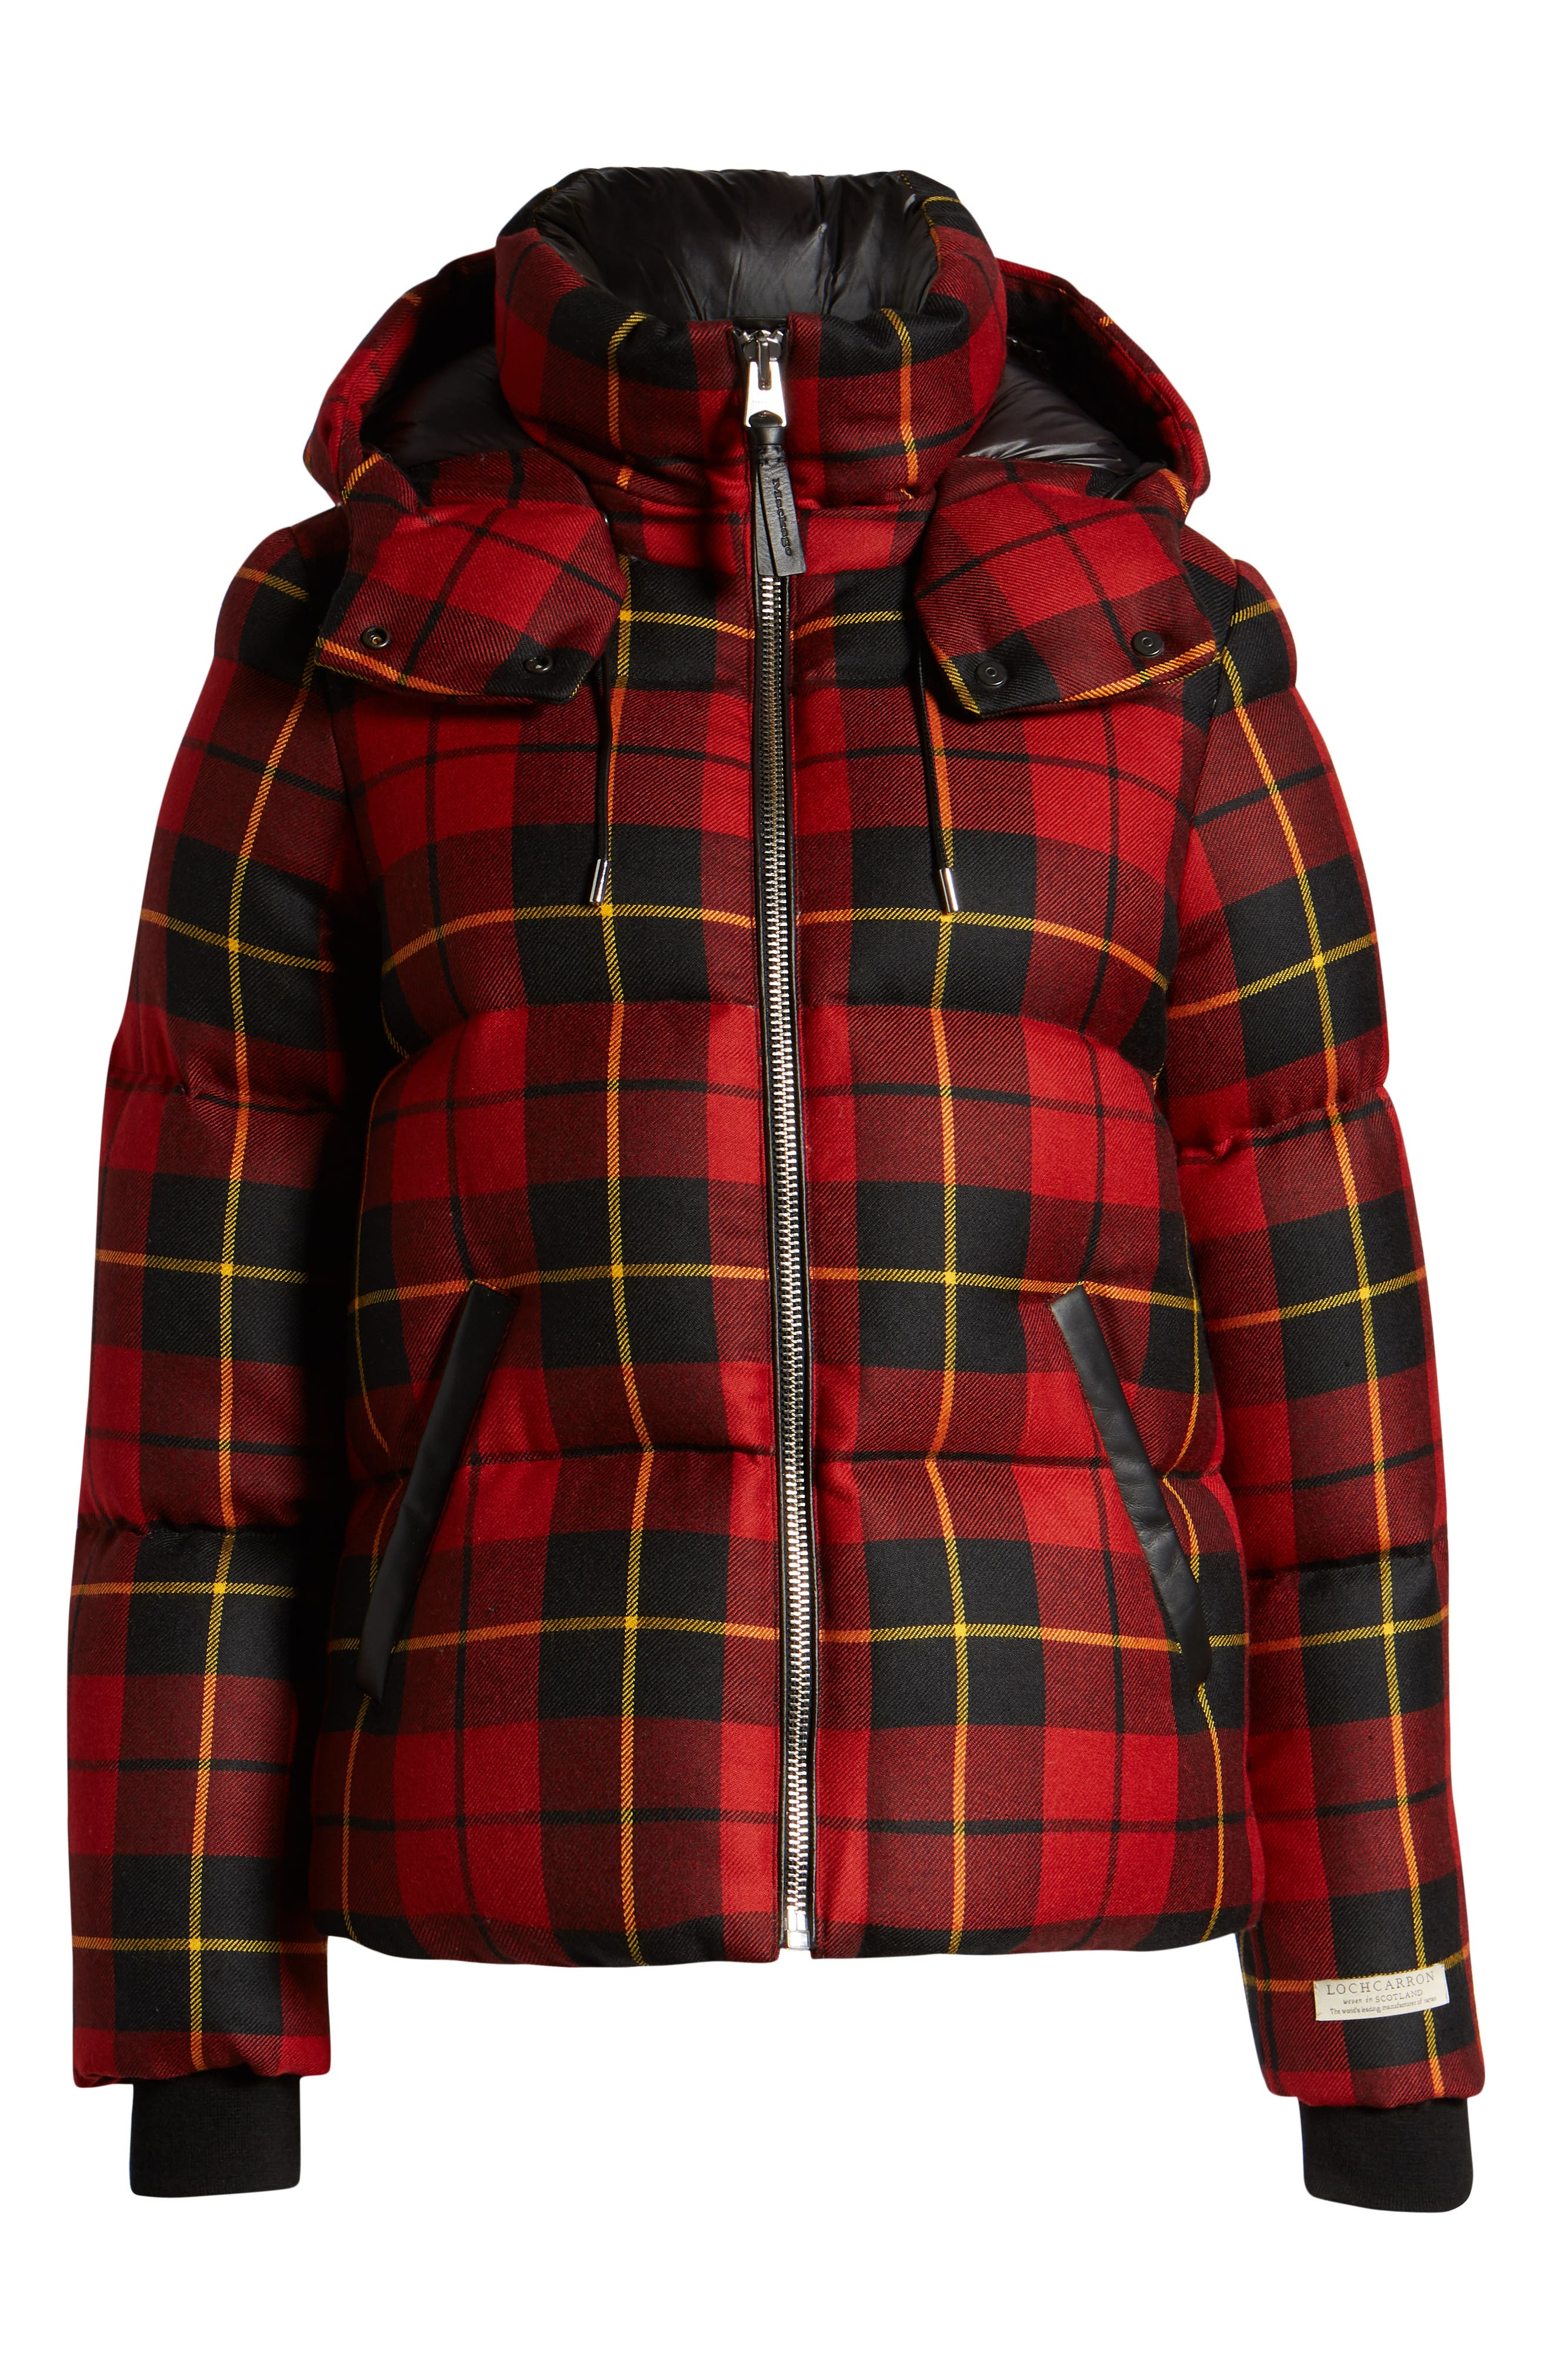 MACKAGE, Miley Wool Down Puffer Jacket, Alternate thumbnail 5, color, RED